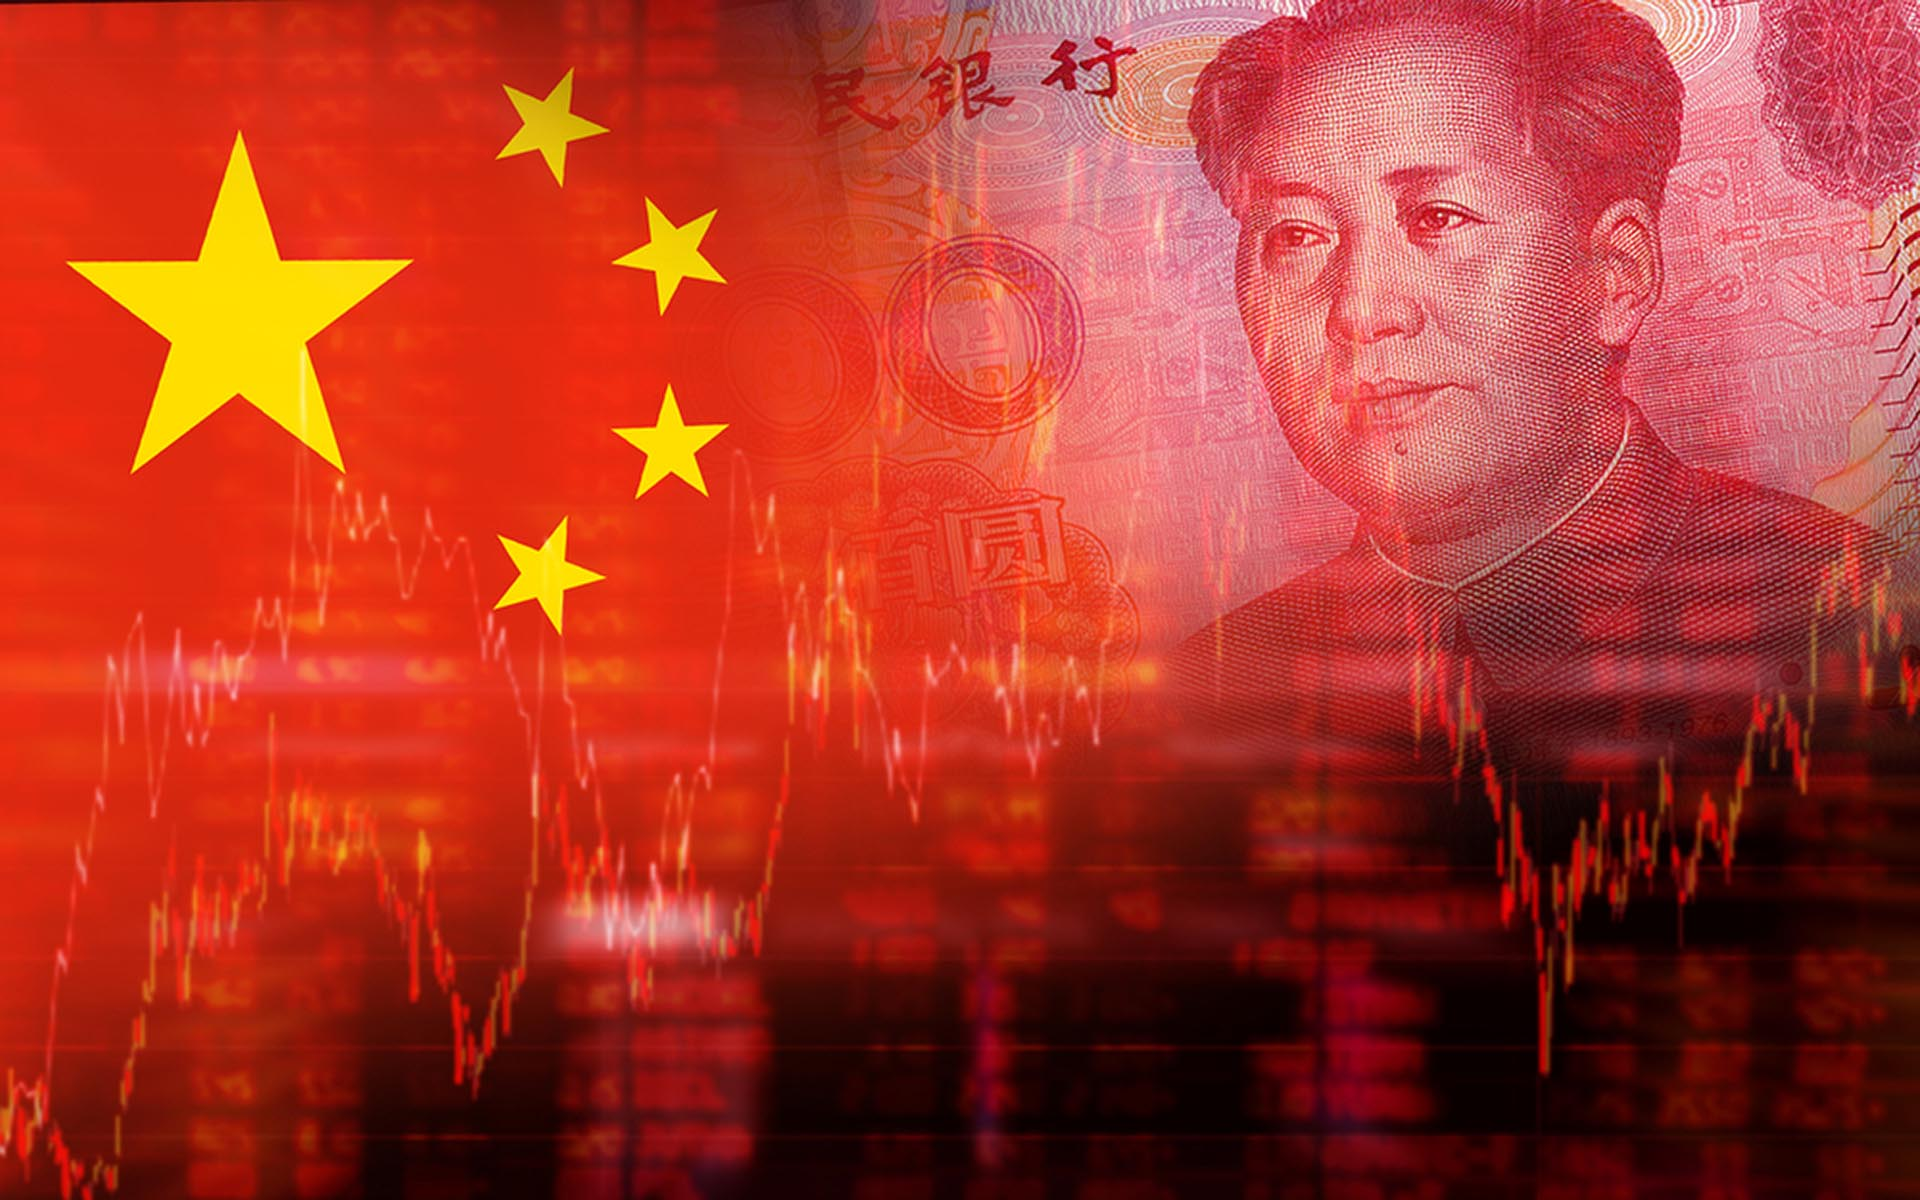 Bitcoin, Ethereum, all cryptocurrencies down substantially post China heavy hand report""